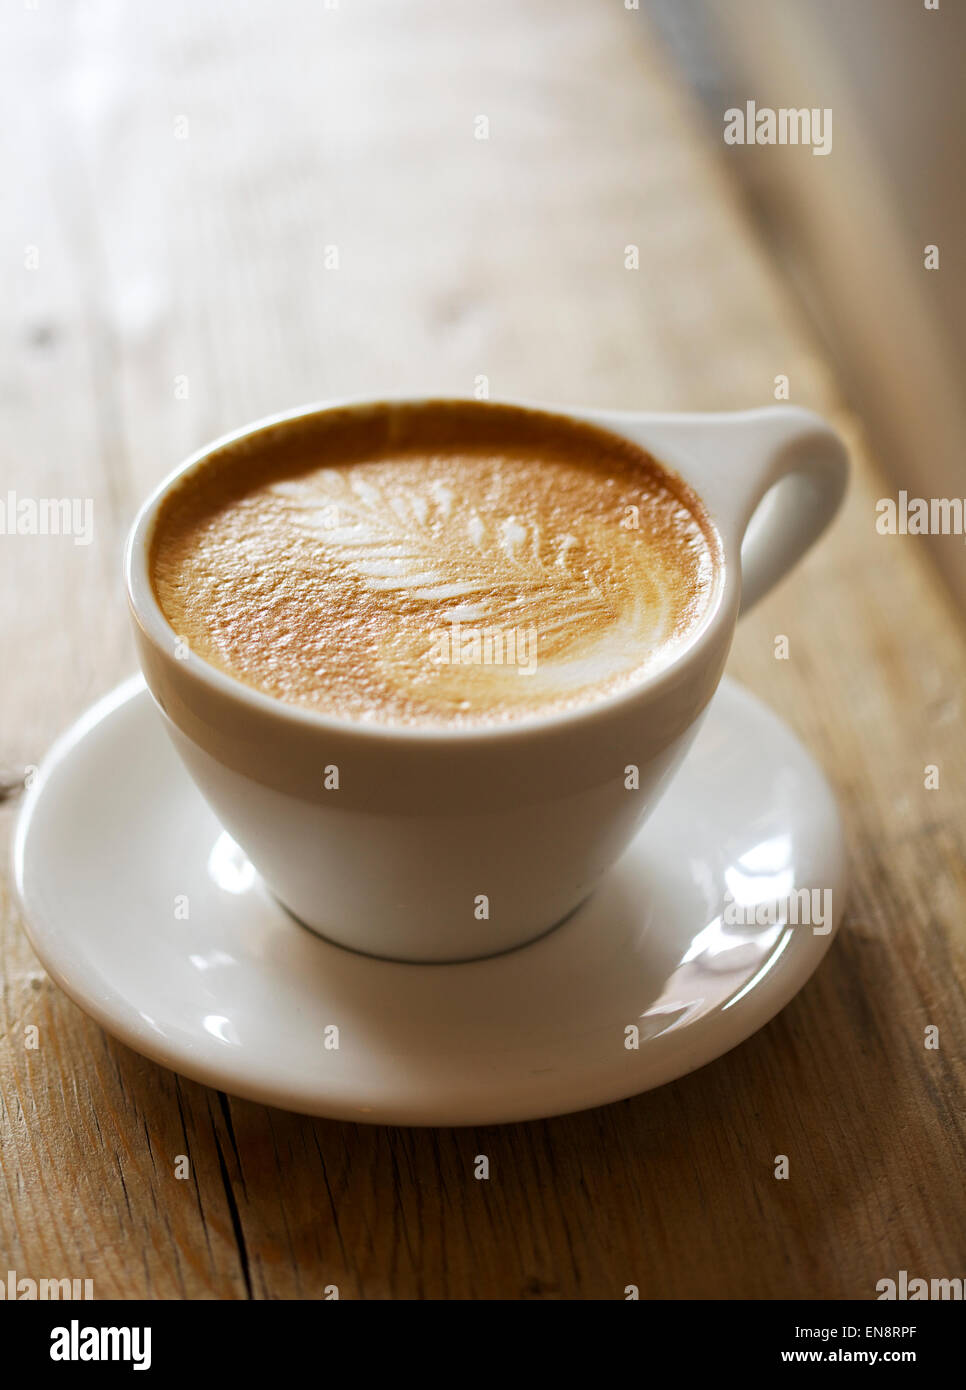 A cappuccino with a leaf pattern in the foam in a white cup with a saucer sitting on a wooden table, background - Stock Image